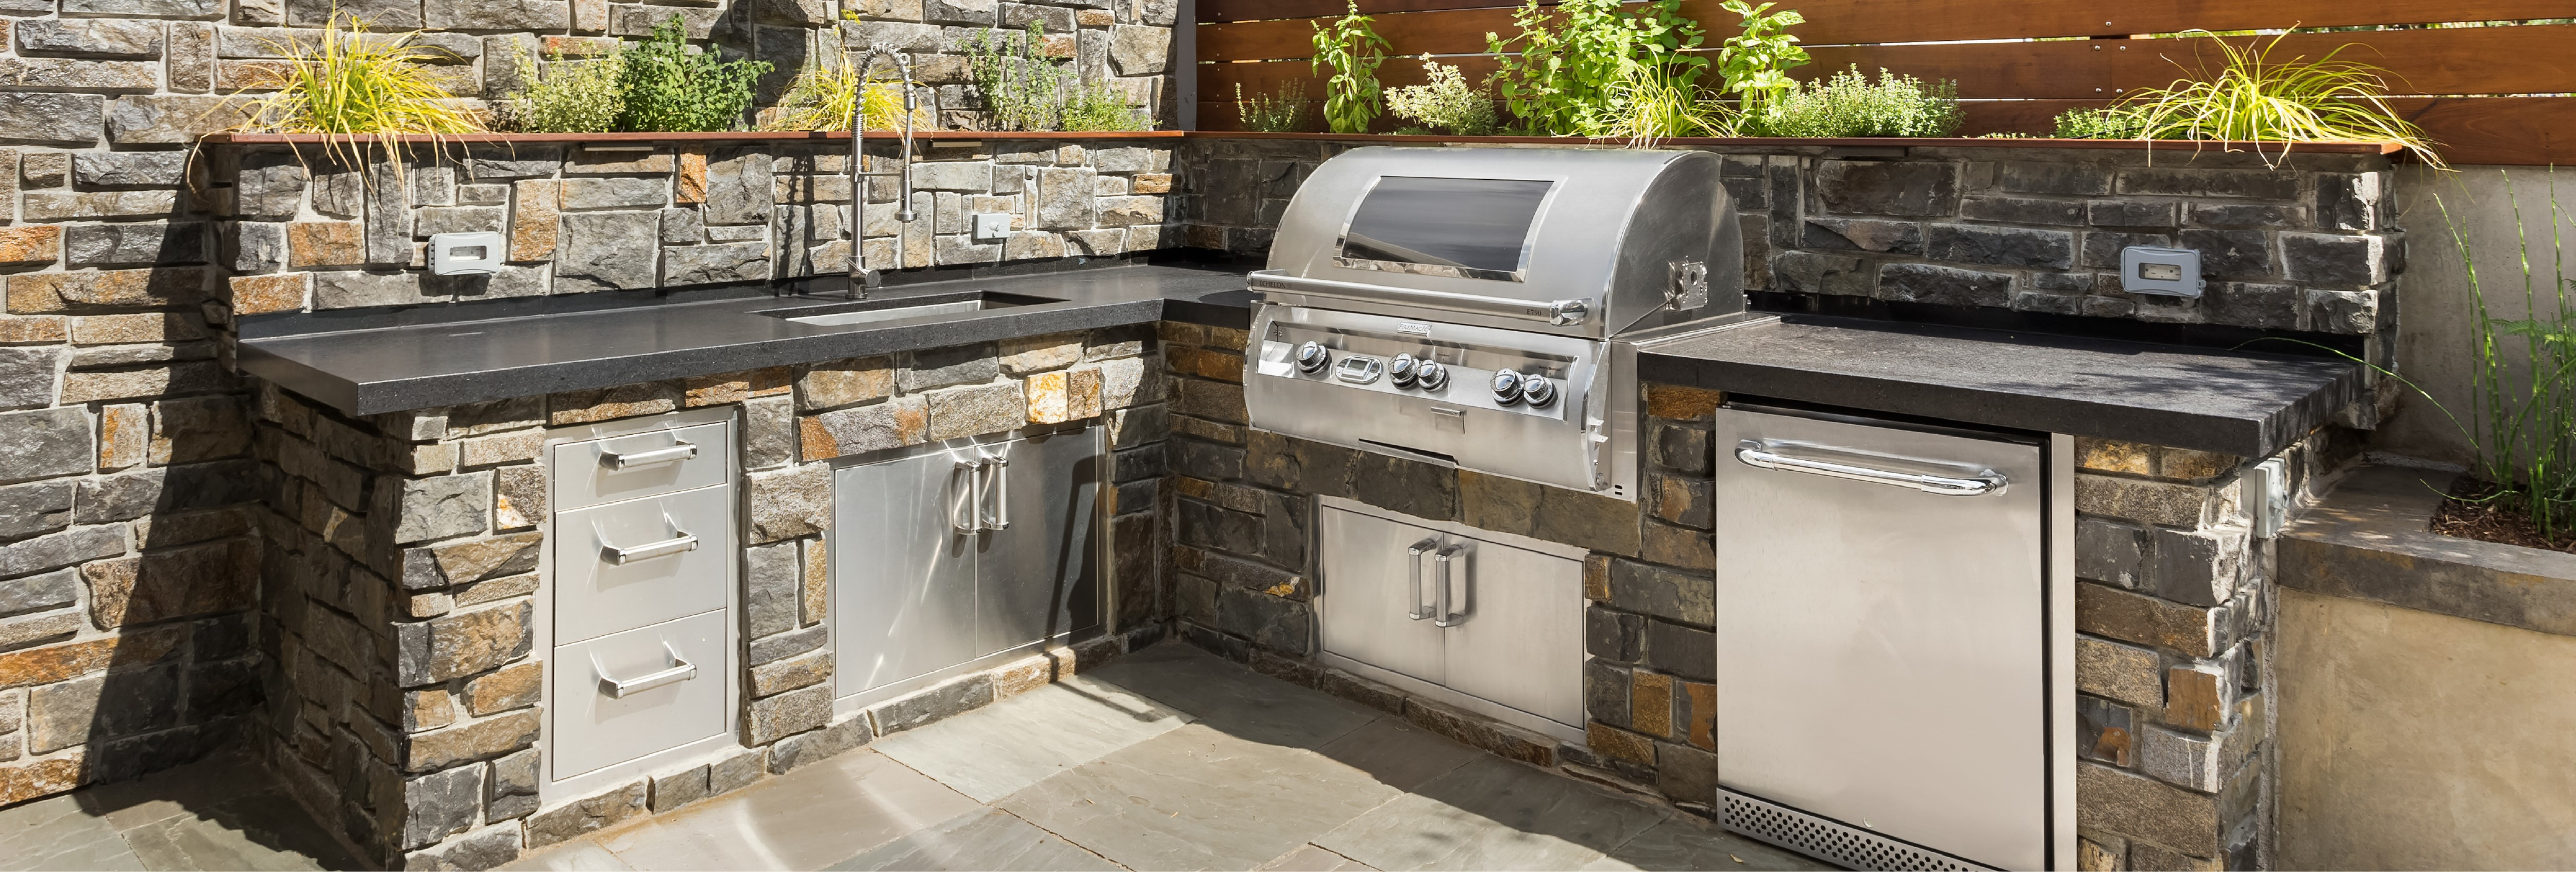 Outdoor kitchen with a large grill, sink and refrigerator